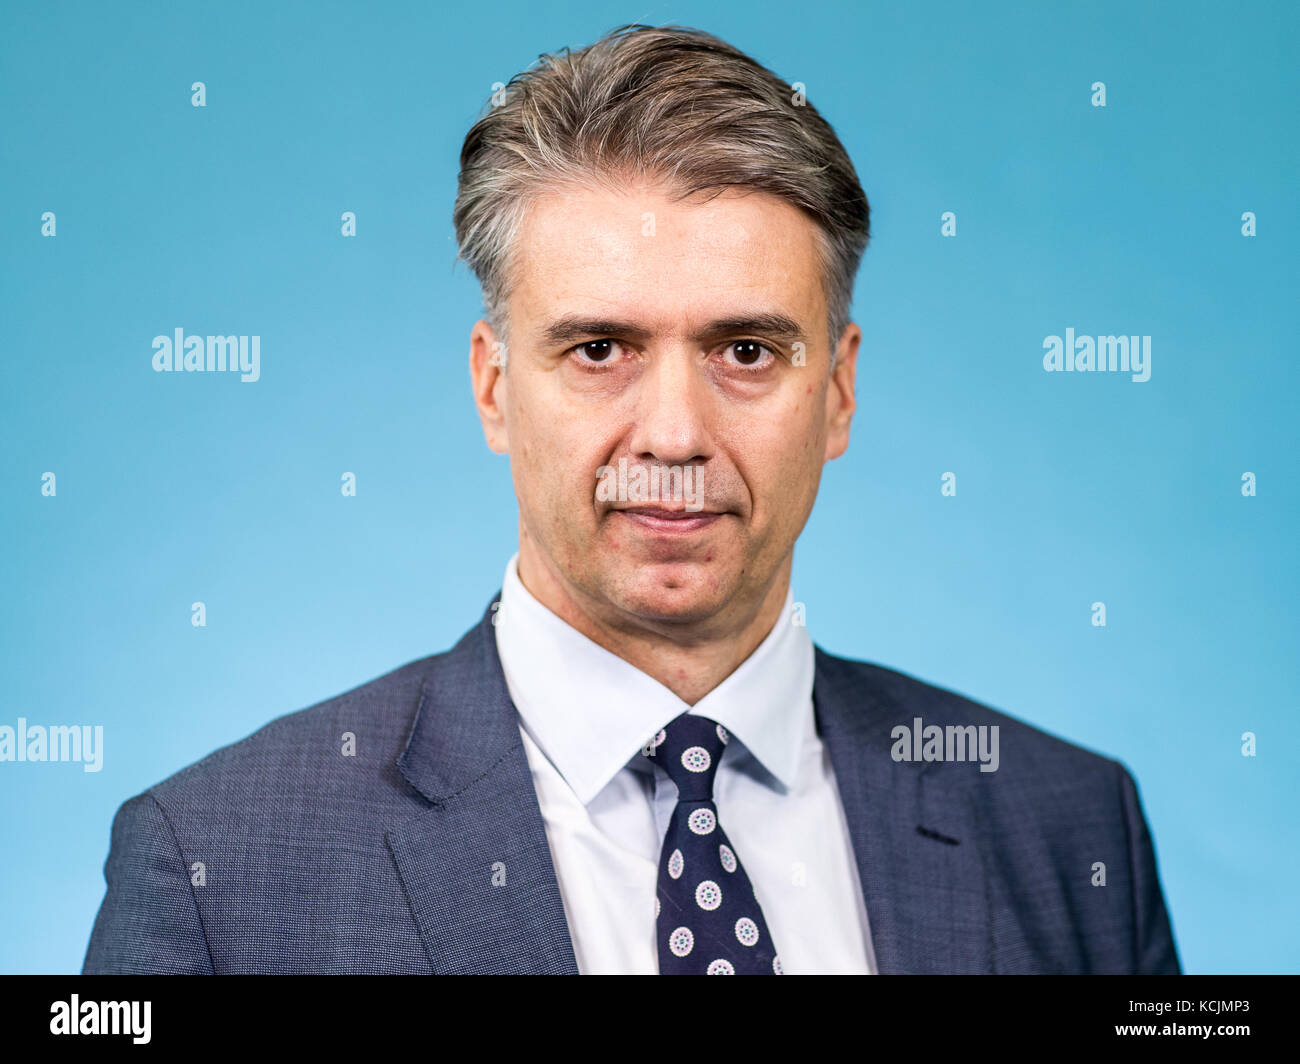 Marc Jongen, member of the AfD parliamentary group in the 19th legislative period of the Bundestag (federal parliament), Stock Photo